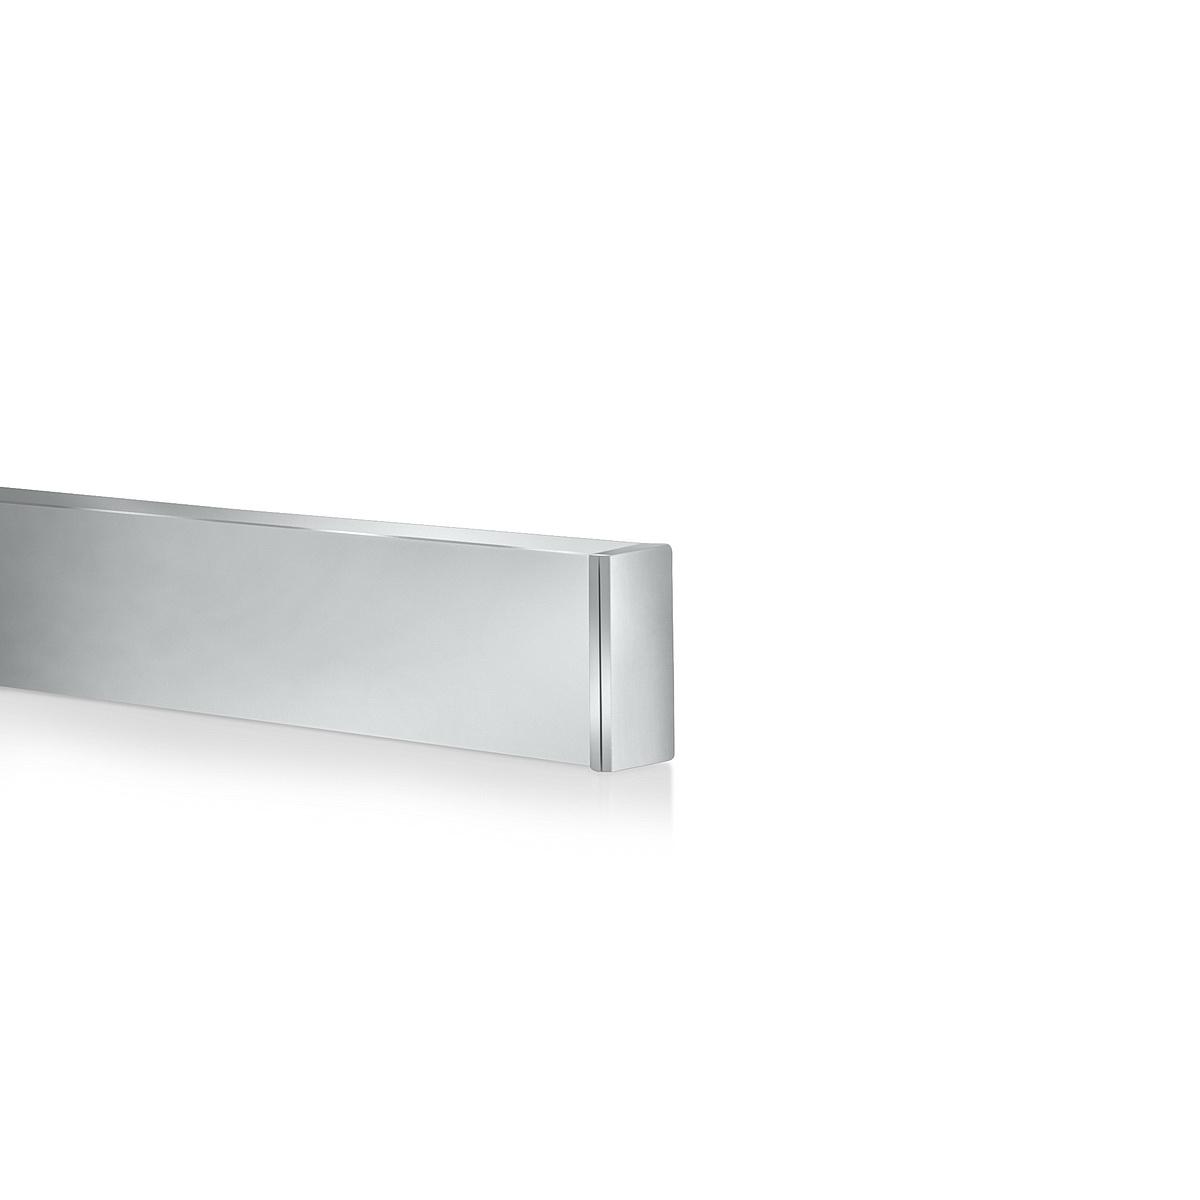 Easy Rail System, Clear Anodized Finish